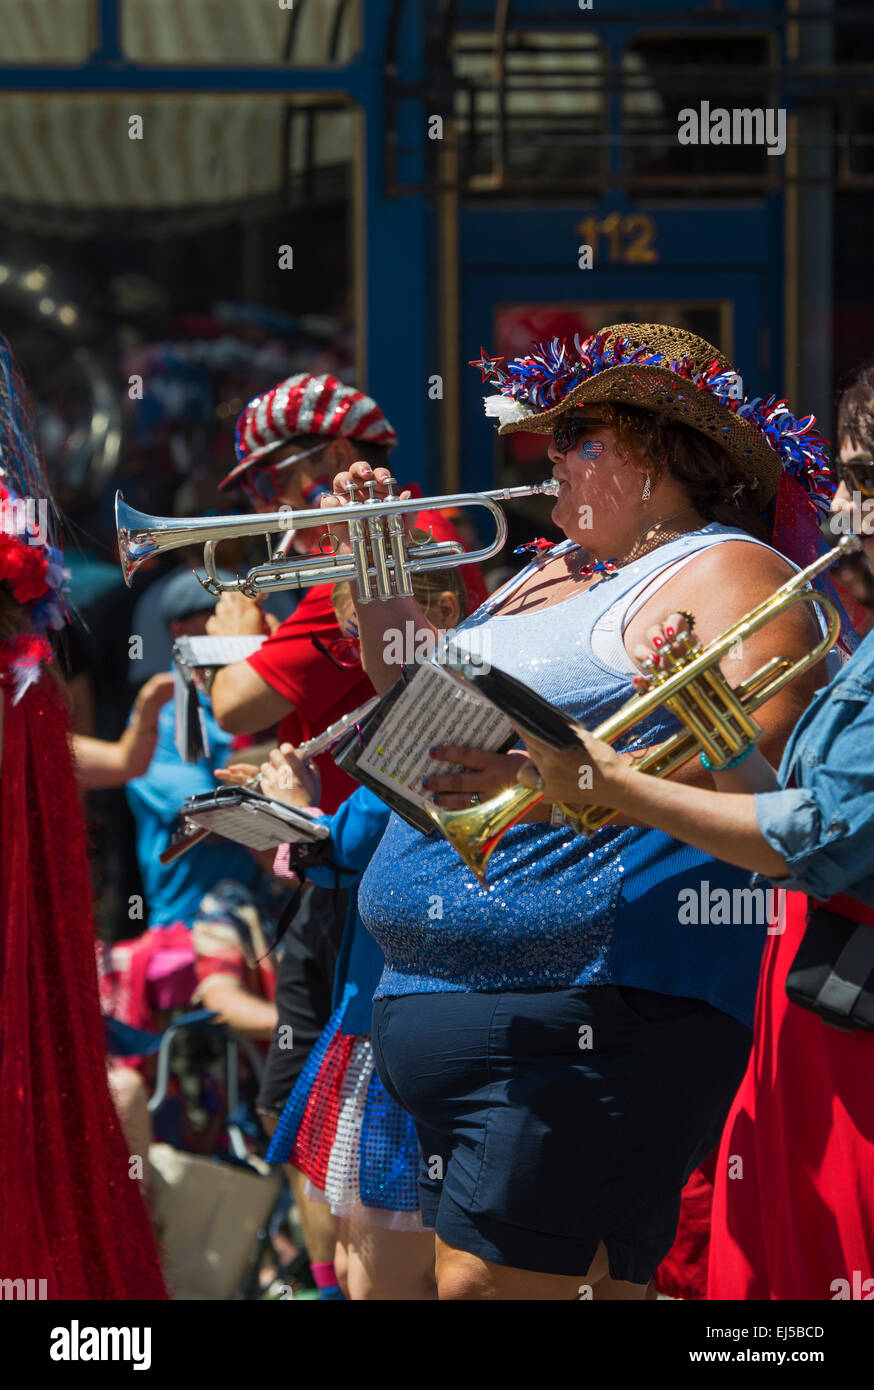 Over weight woman plays trumpet July 4, Independence Day Parade, Telluride, Colorado, USA - Stock Image